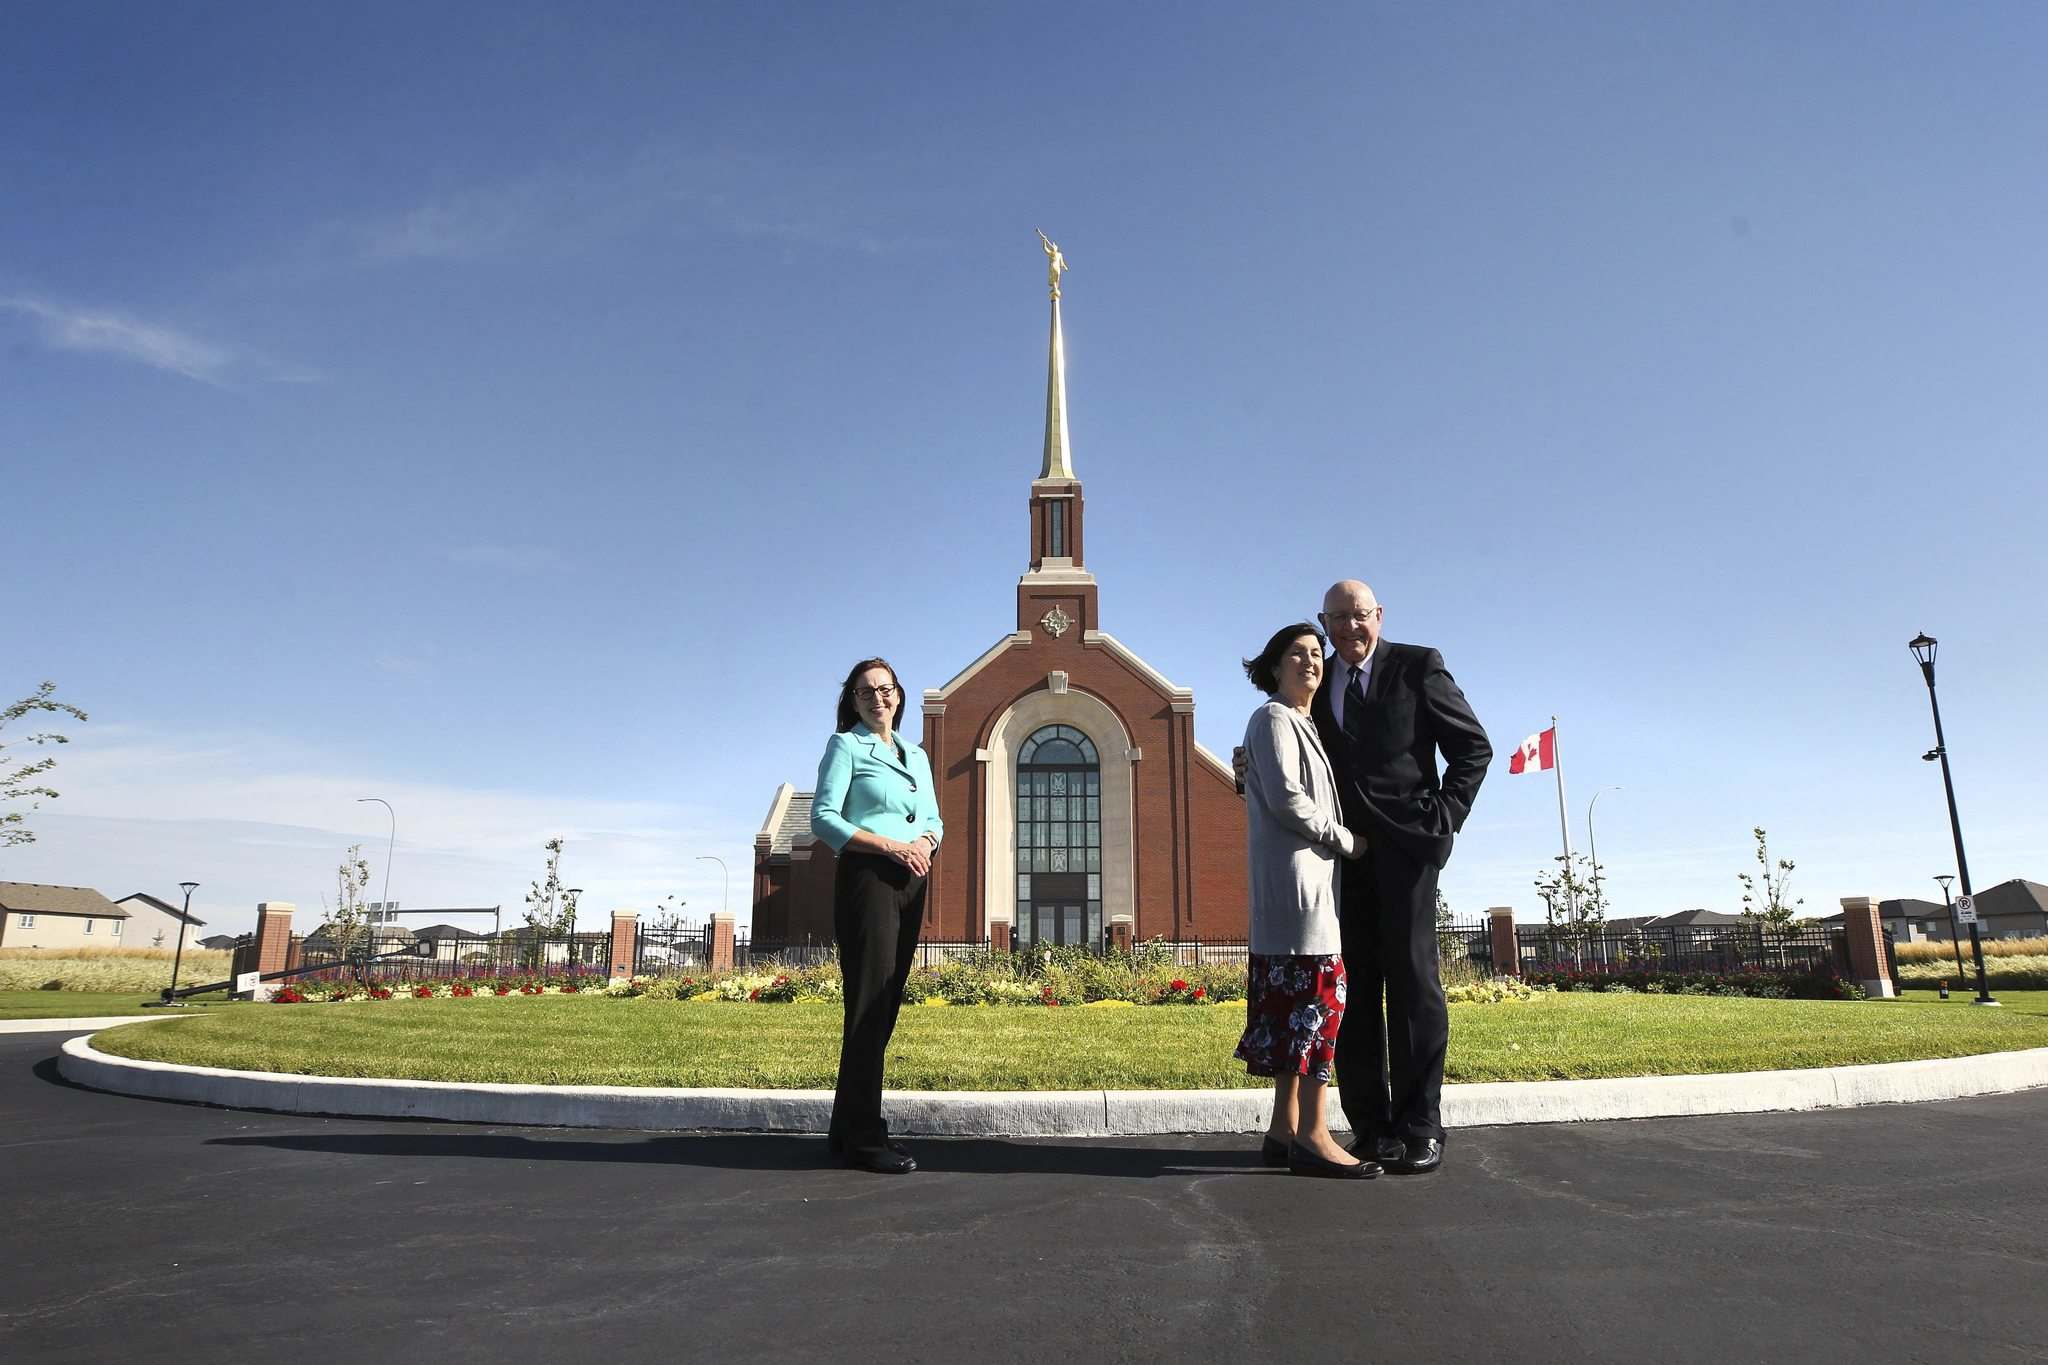 RUTH BONNEVILLE / WINNIPEG FREE PRESS</p><p>Christine Baronins and Allan and Yvonne Robison stand outside the new temple at 15 Centre St., situated on the meridian between south and north bound lanes of Kenaston Boulevard.</p></p>